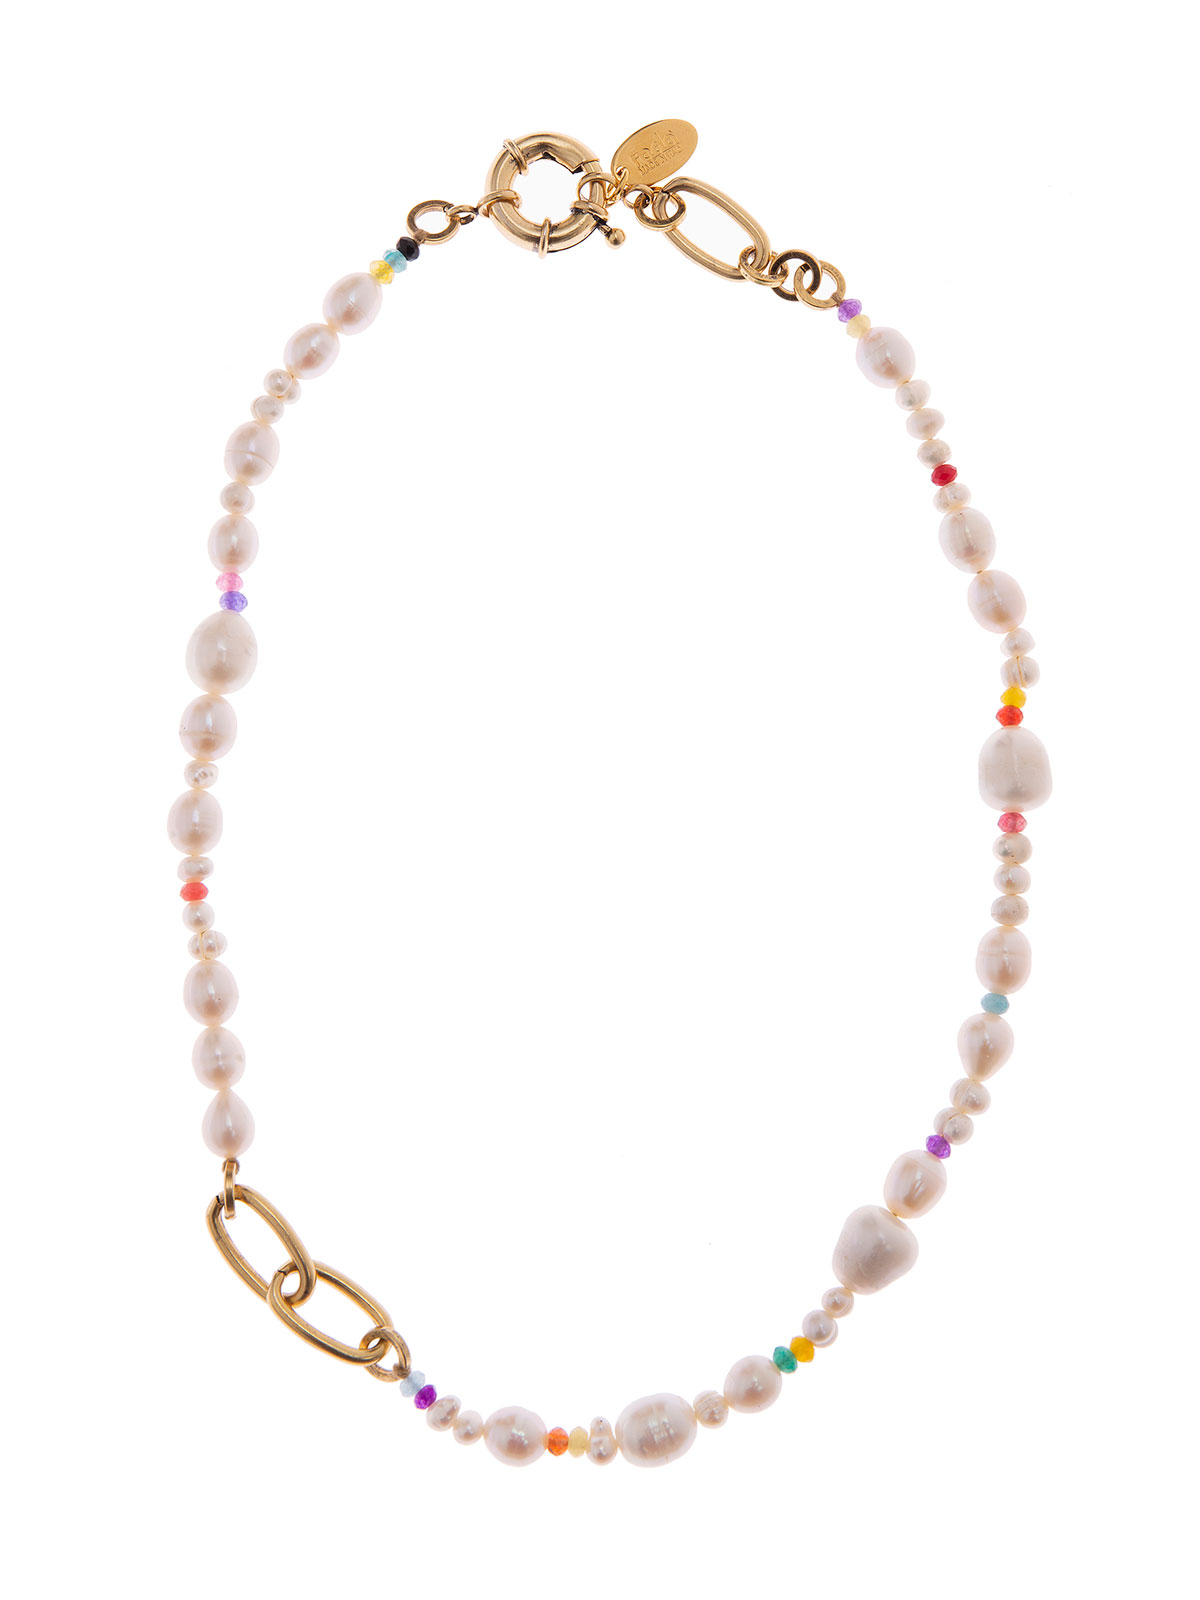 Freshwater pearl and jade necklace